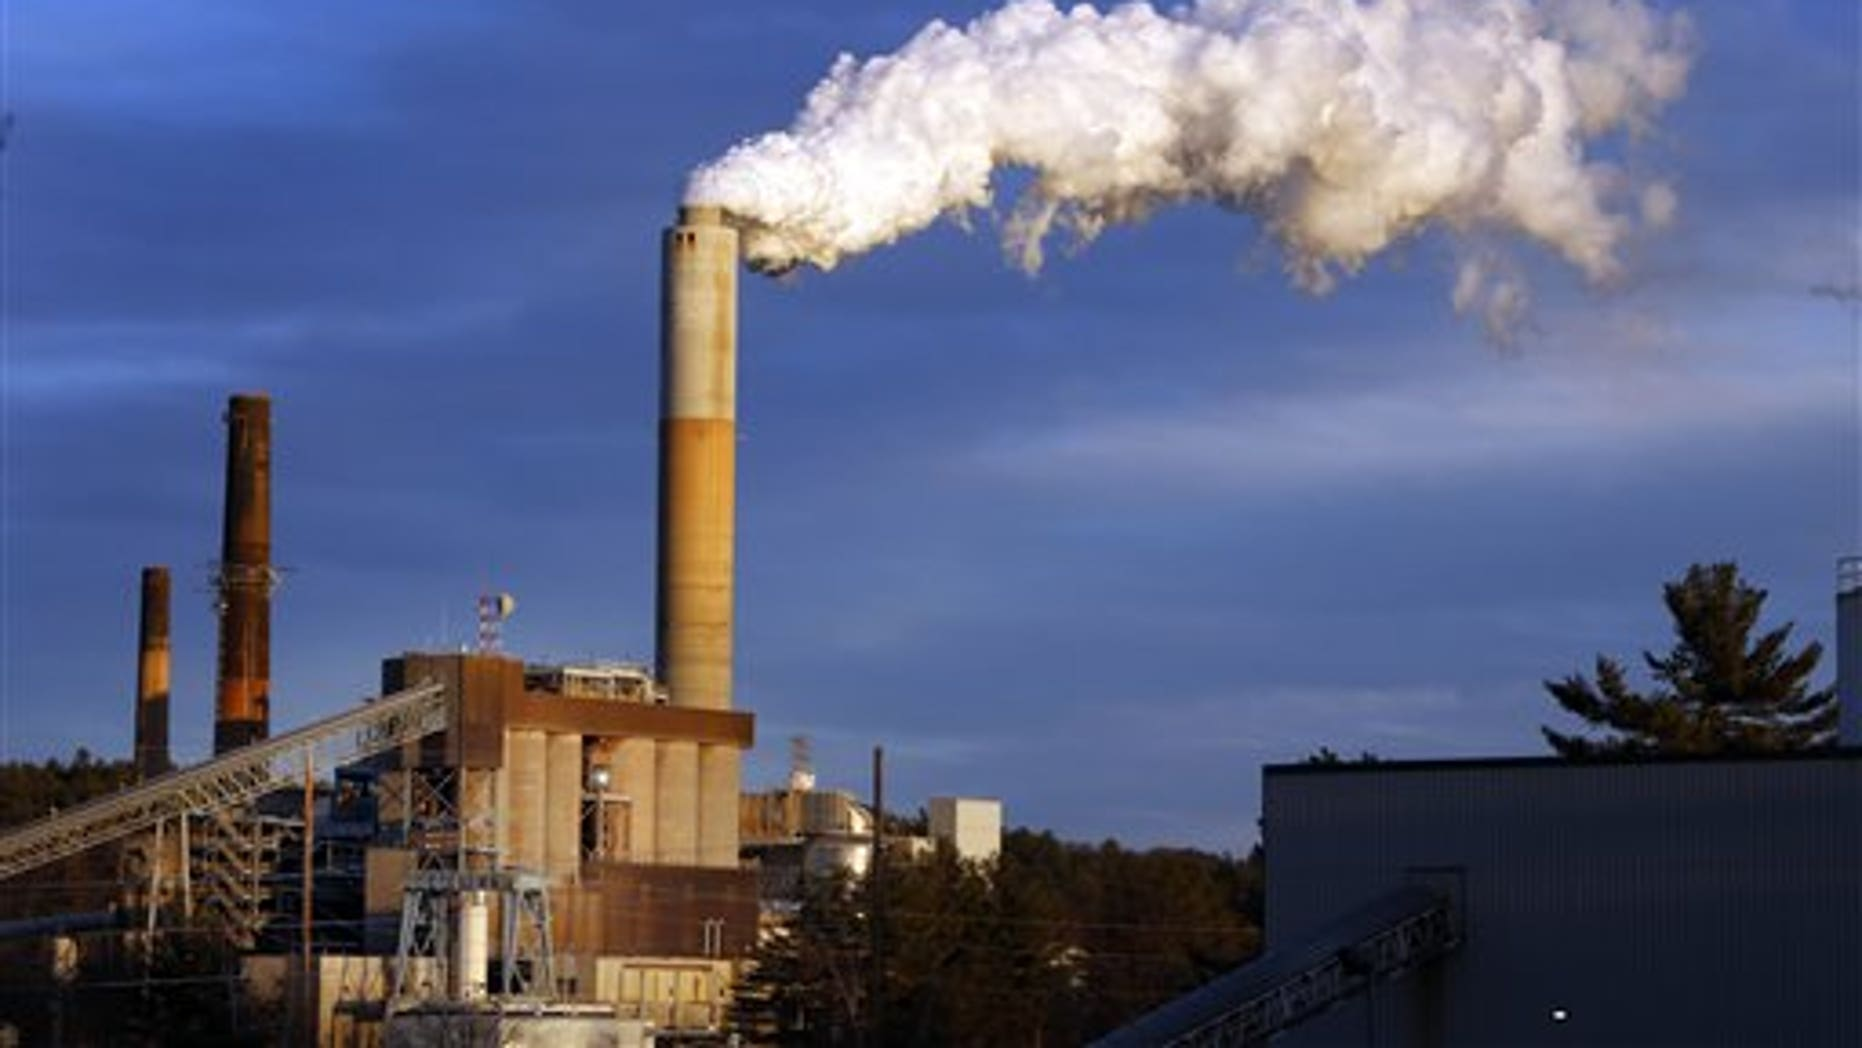 FILE - In this Tuesday Jan. 20, 2015 file photo, a plume of steam billows from the coal-fired Merrimack Station in Bow, N.H. (AP Photo/Jim Cole, File)